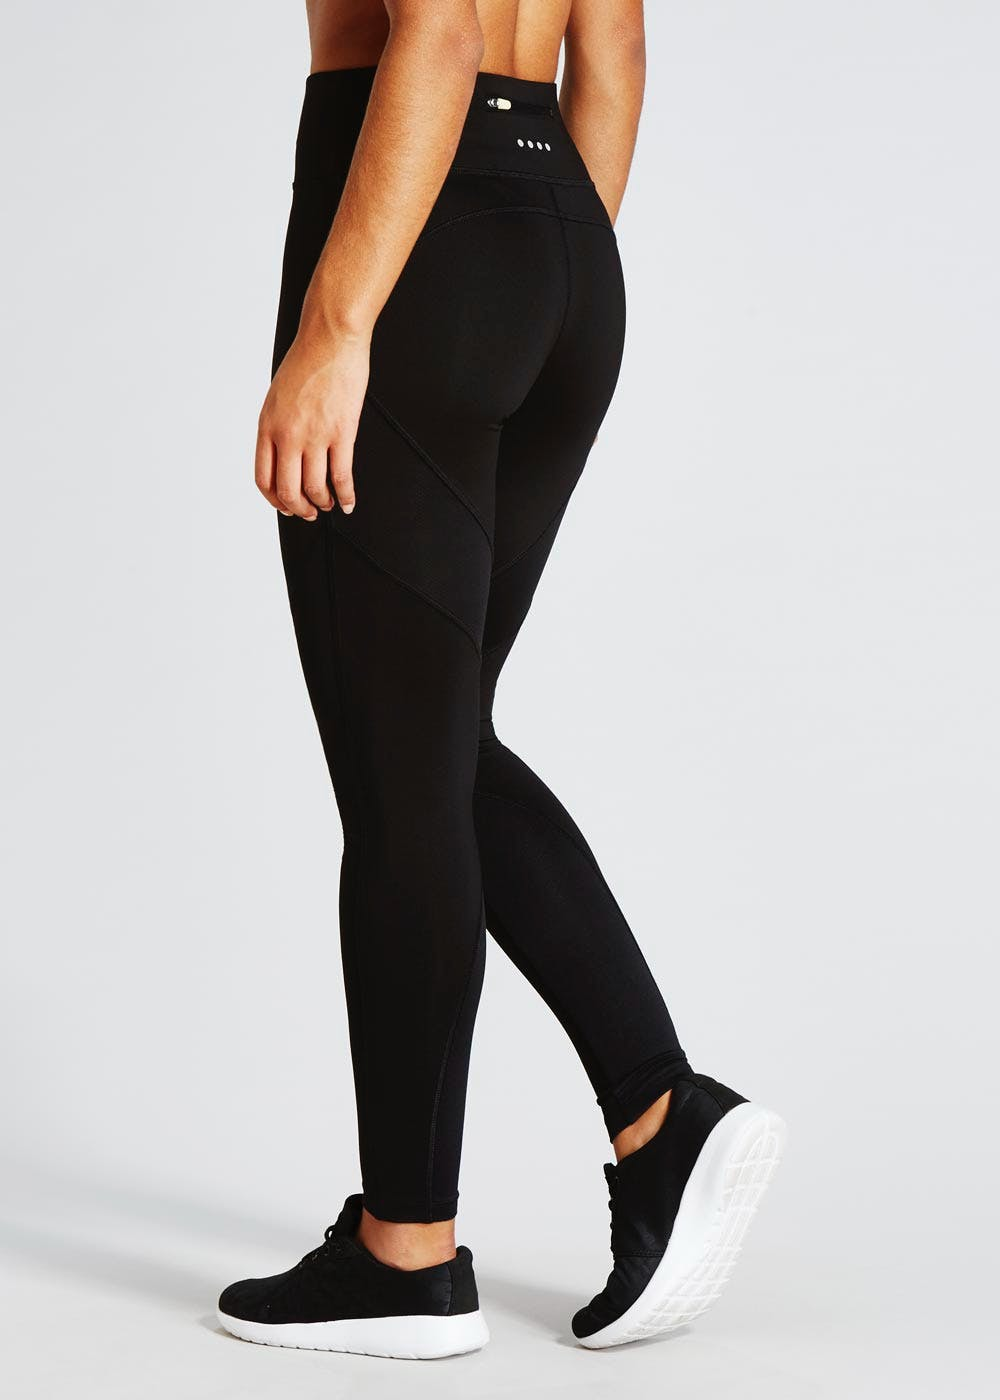 lace up in for whole family shop for official Souluxe Sports Leggings